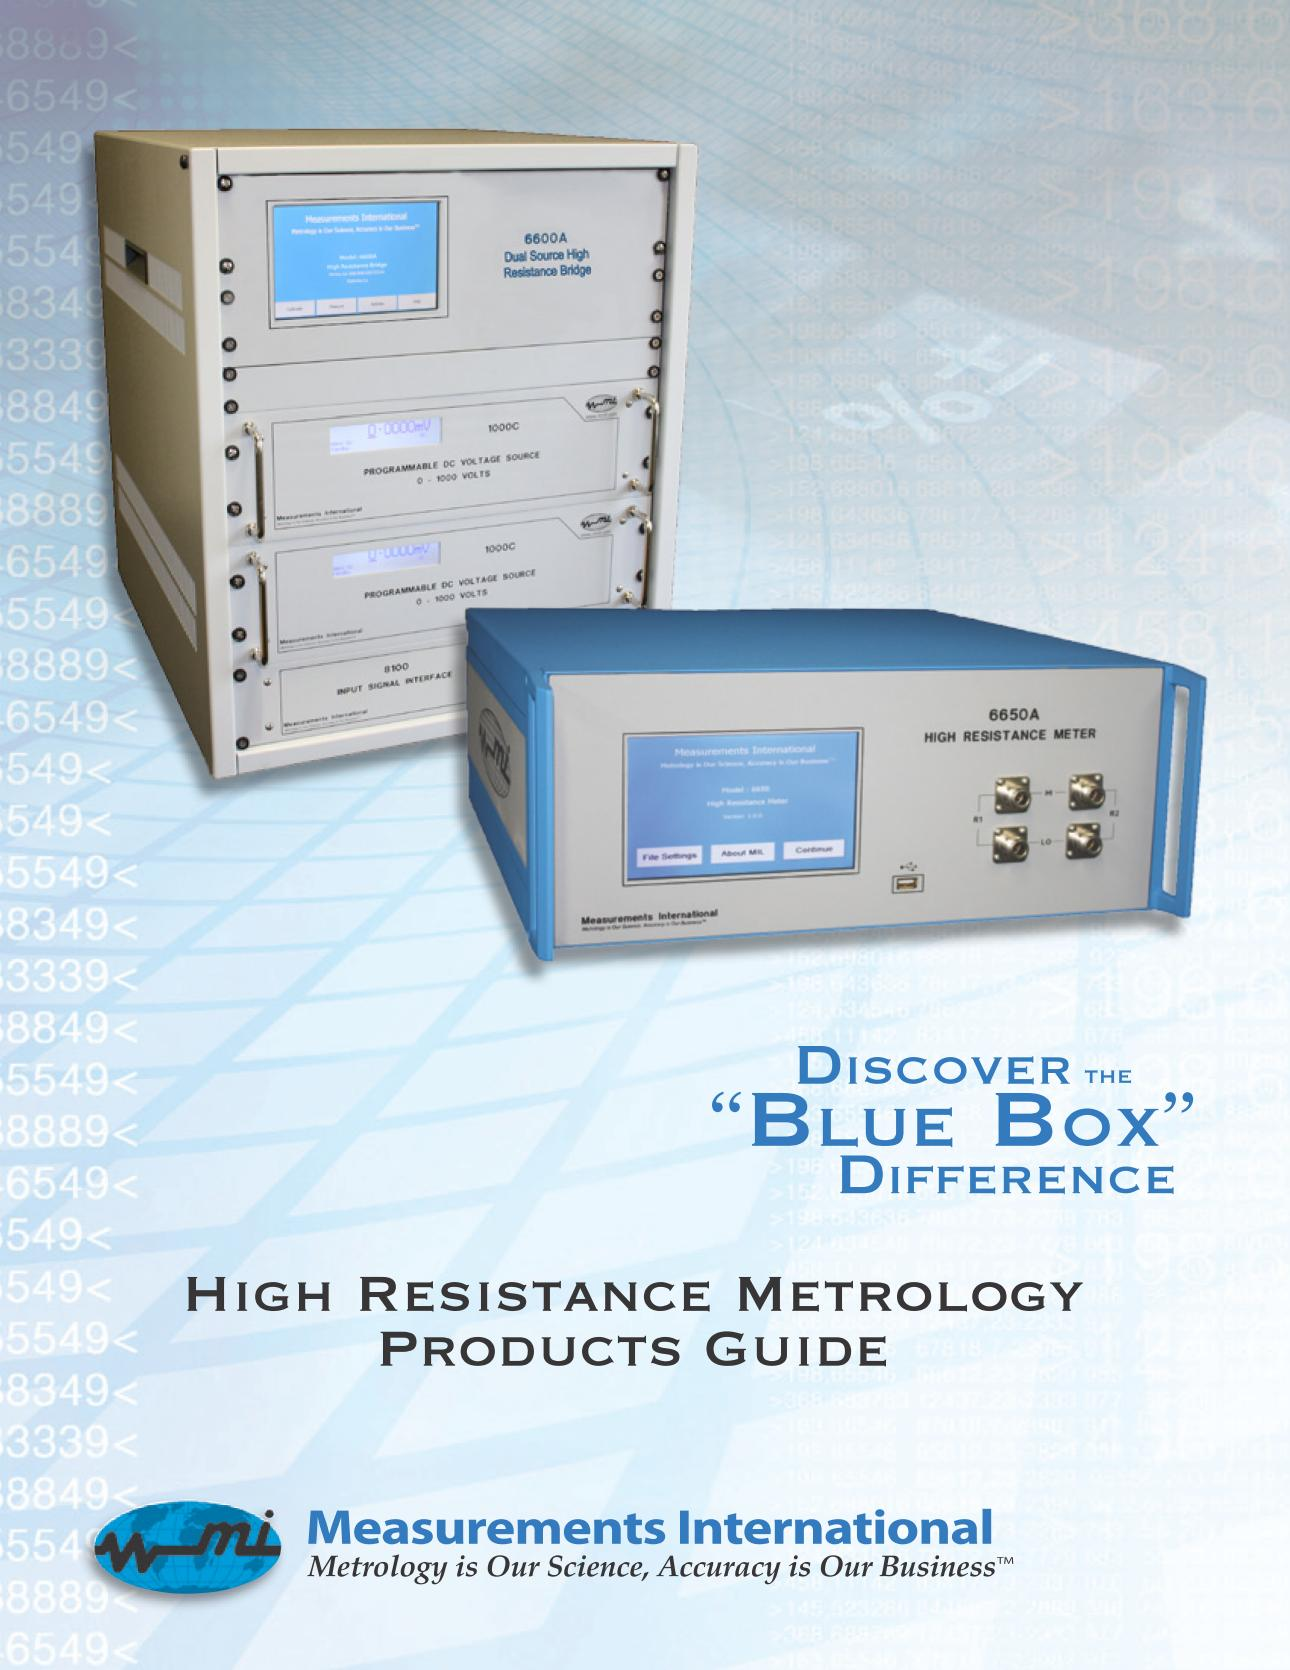 High Resistance Metrology Products Guide